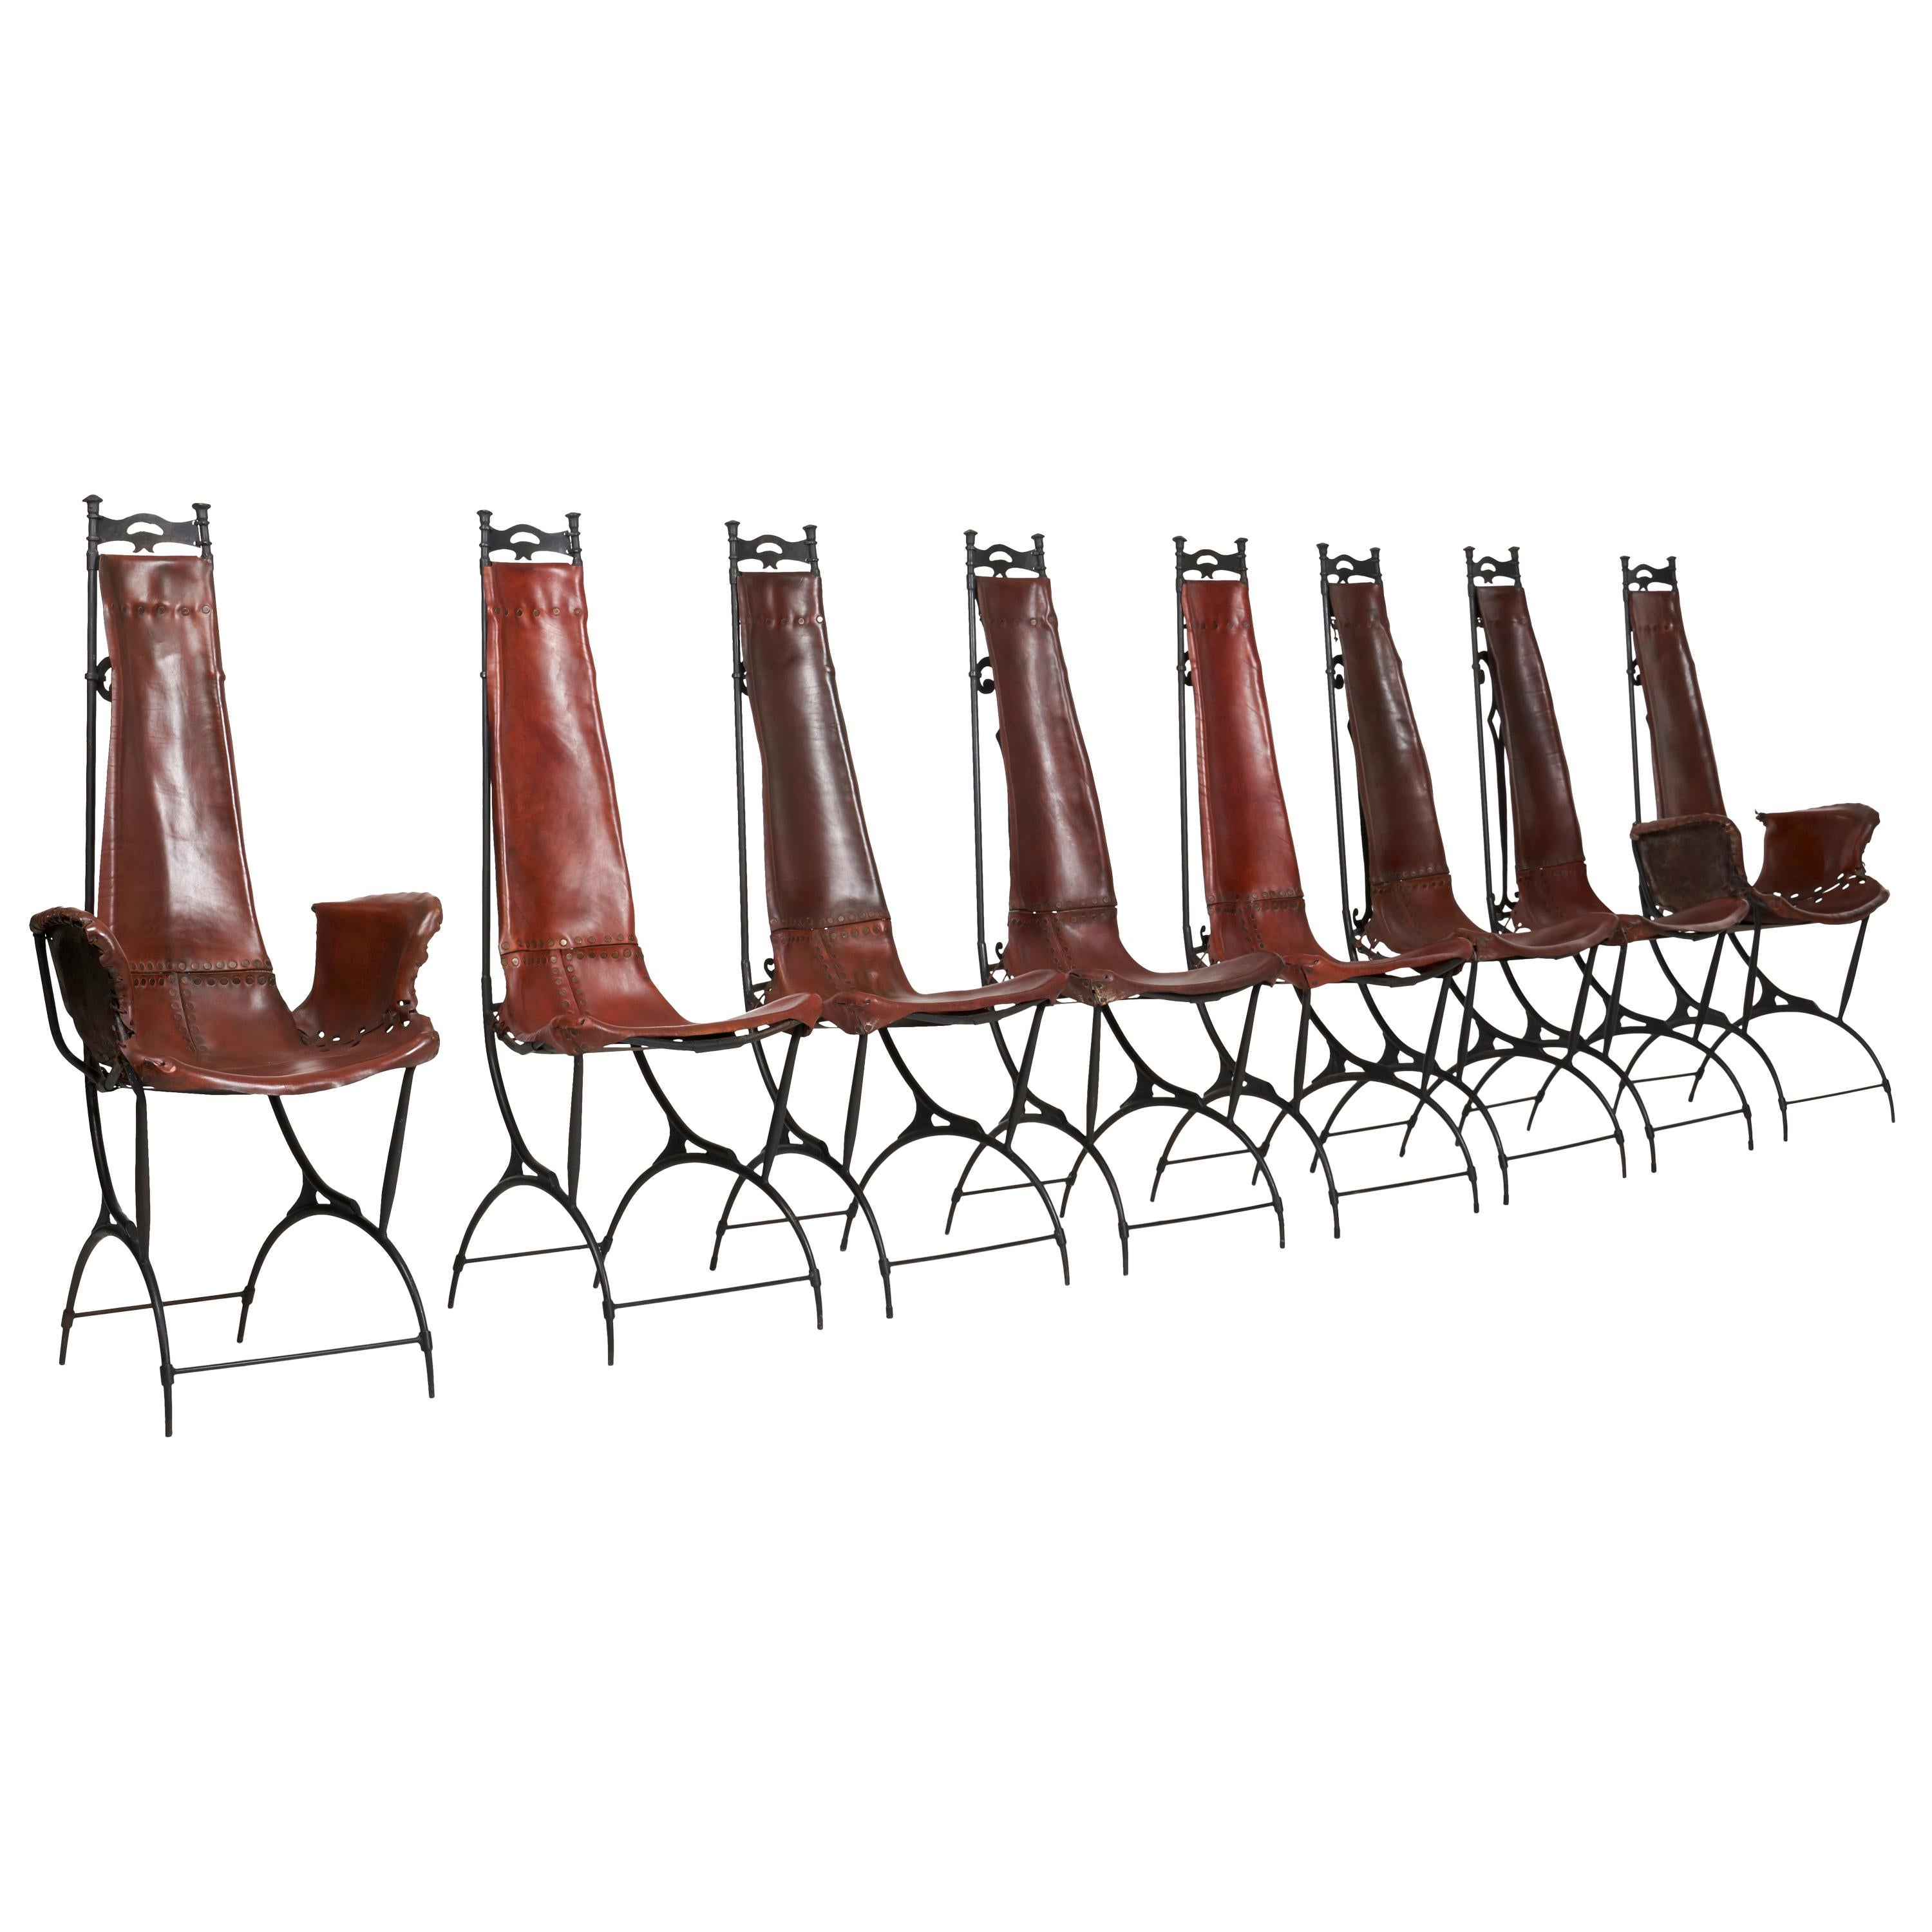 Set of 8 Francois and Sido Thevenin Dining Chairs